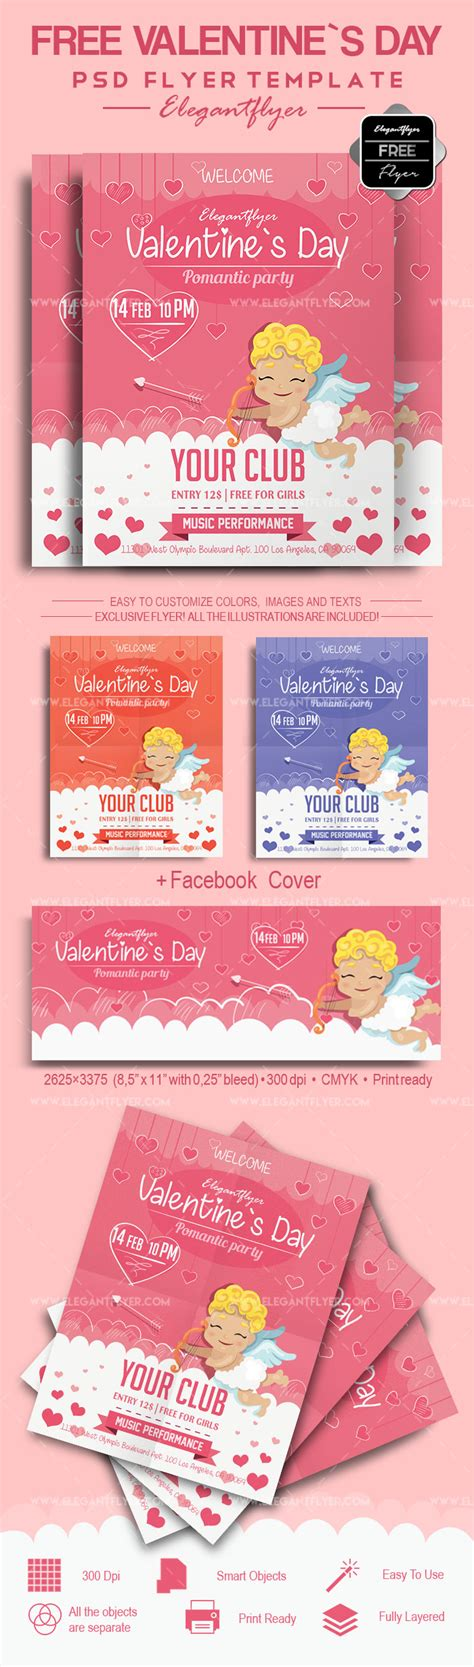 valentines day card template psd s day free flyer psd template by